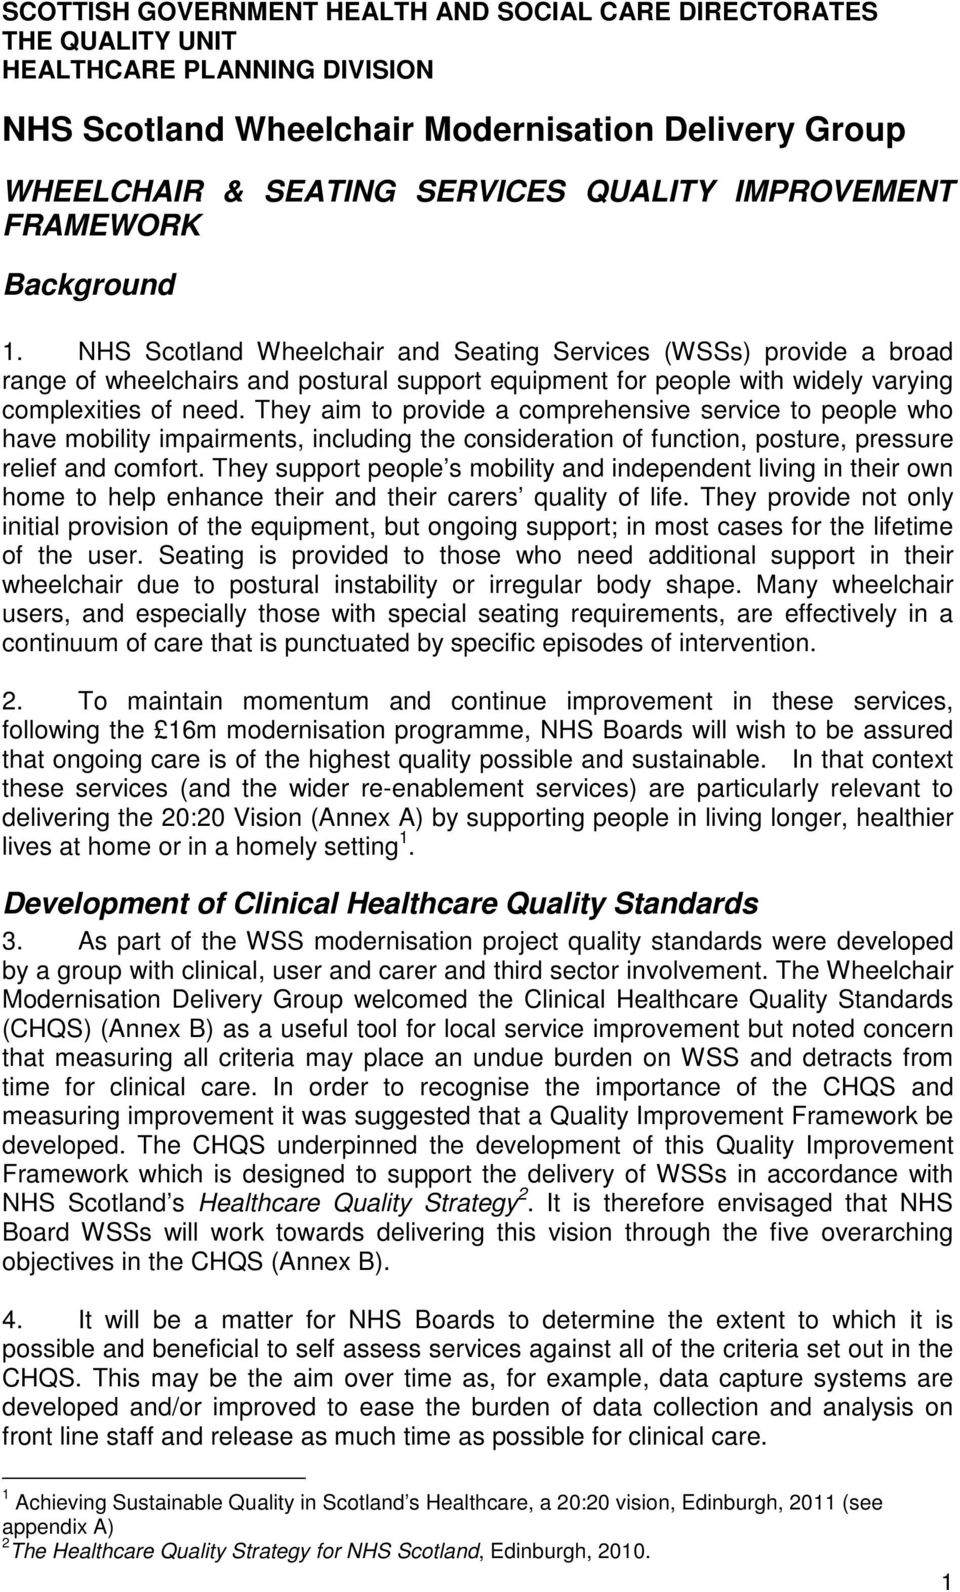 NHS Scotland Wheelchair and Seating Services (WSSs) provide a broad range of wheelchairs and postural support equipment for people with widely varying complexities of need.